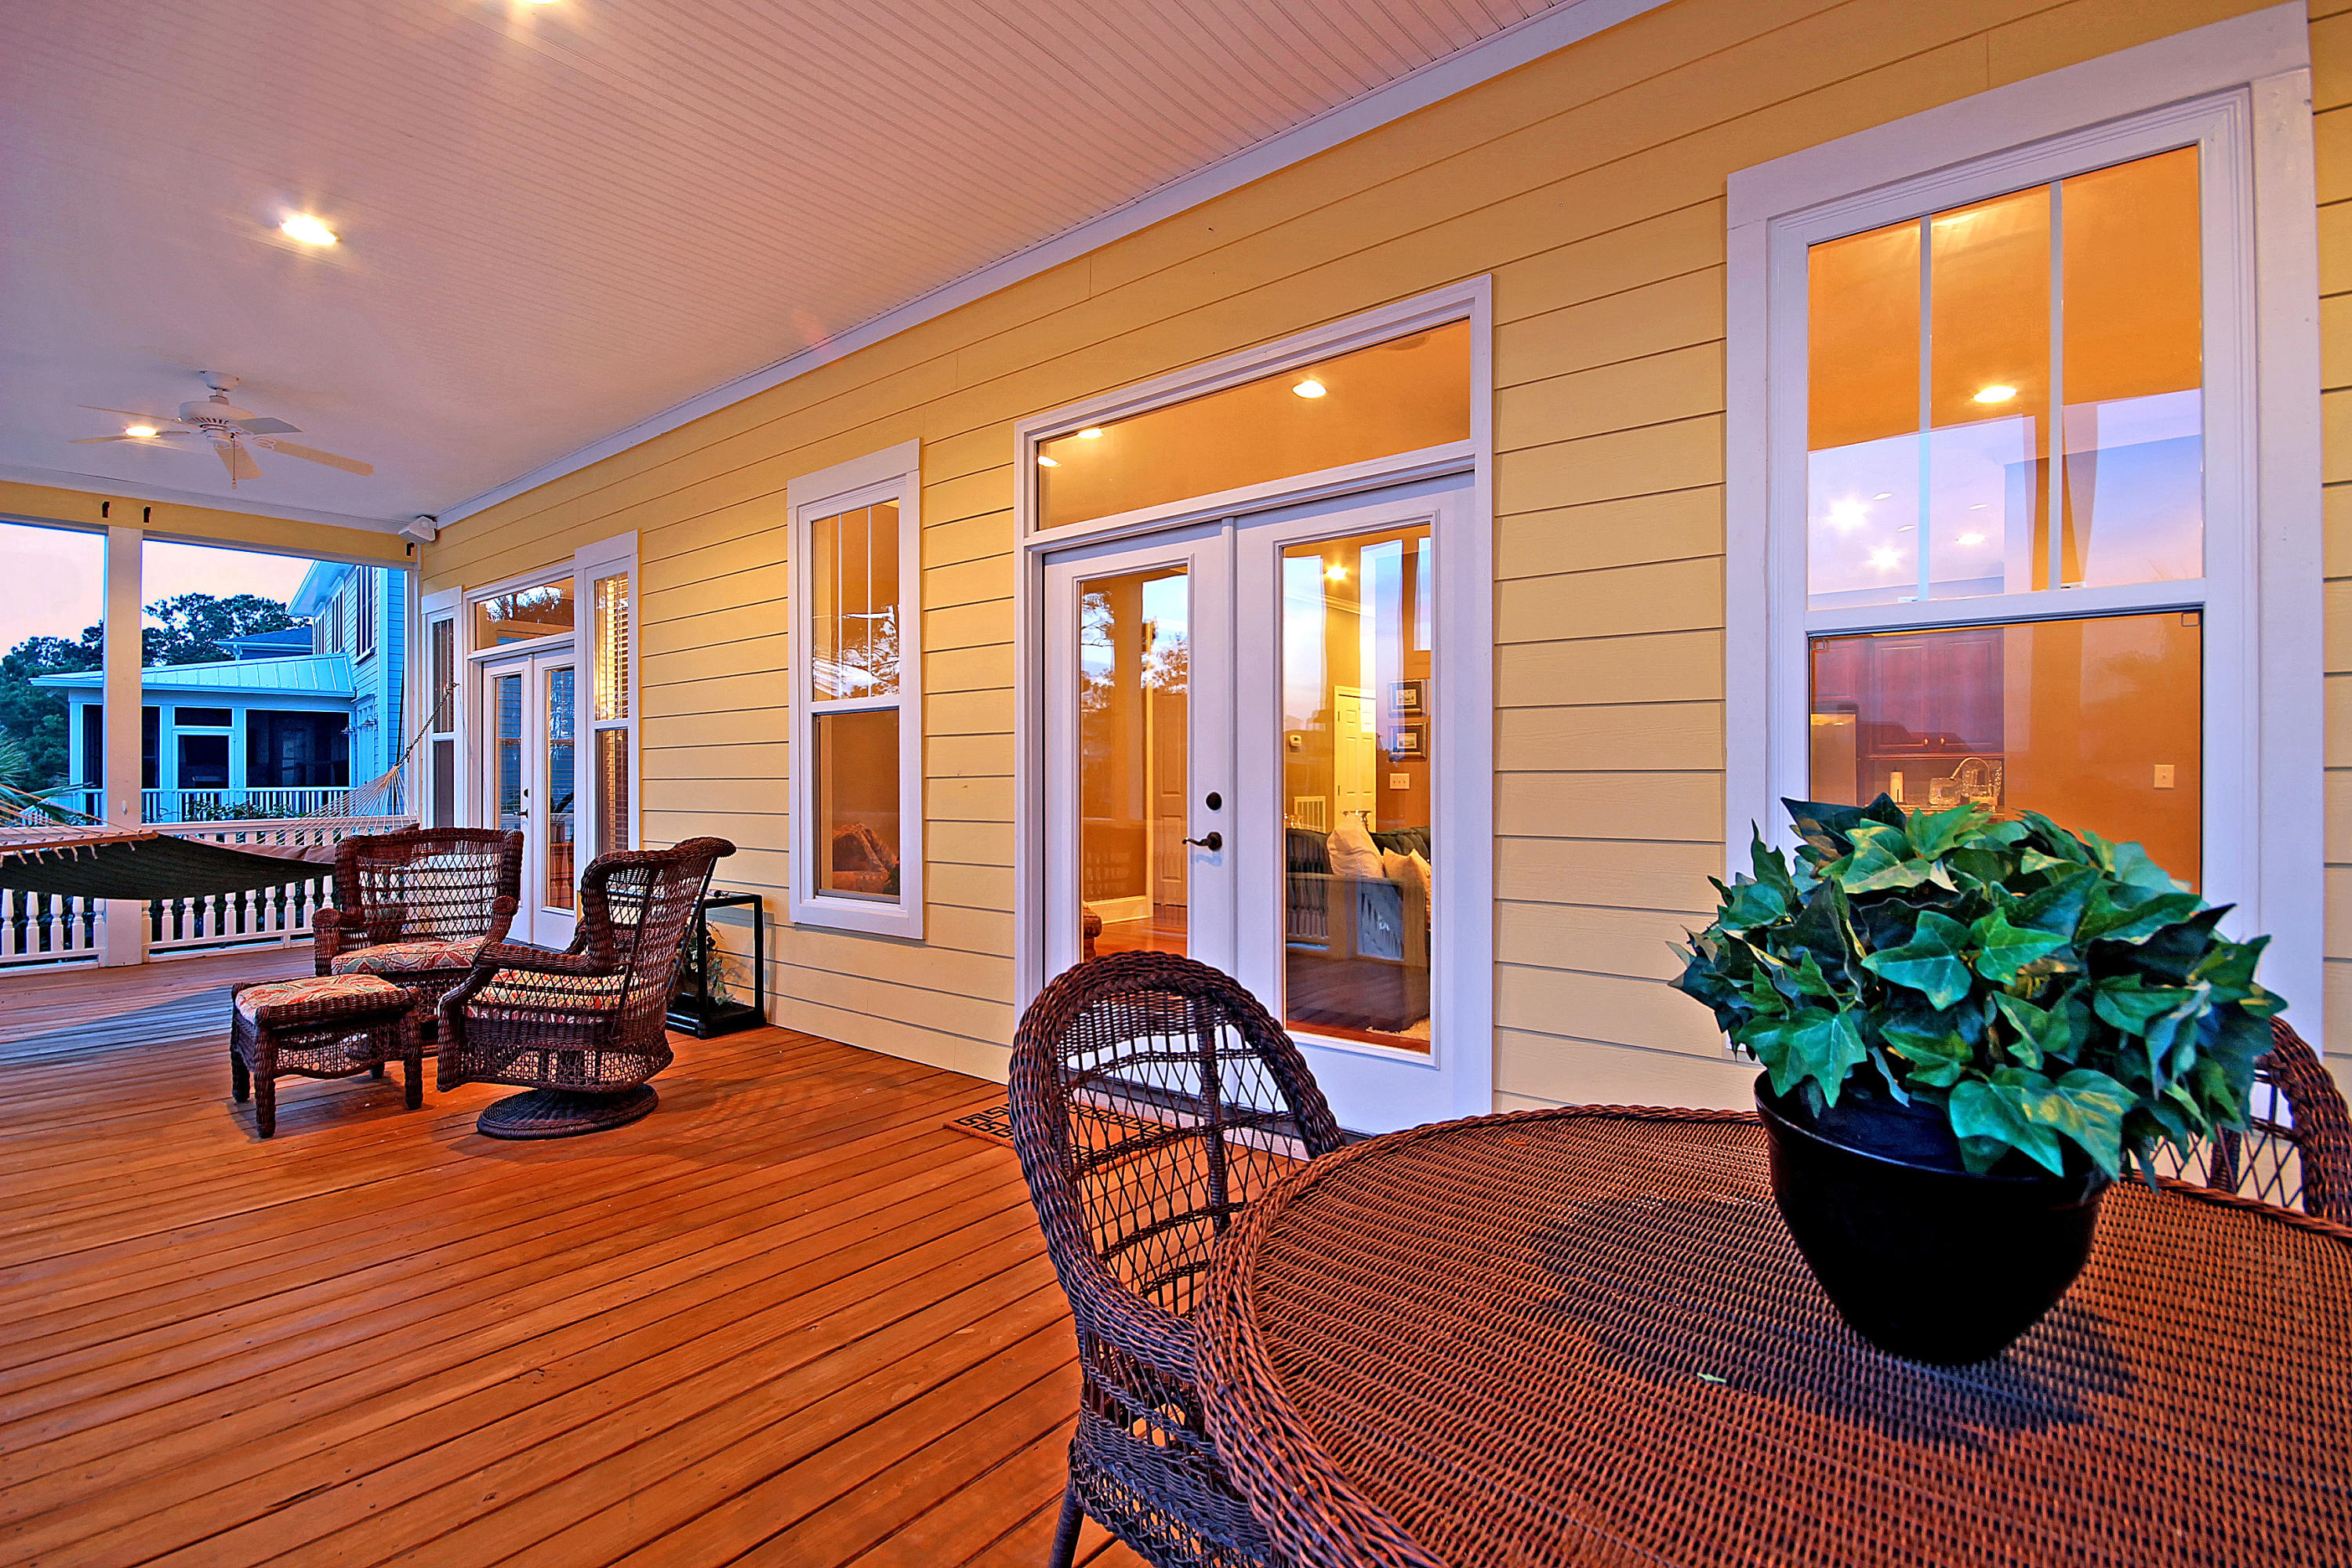 Rivertowne Country Club Homes For Sale - 1536 Rivertowne Country Club, Mount Pleasant, SC - 5